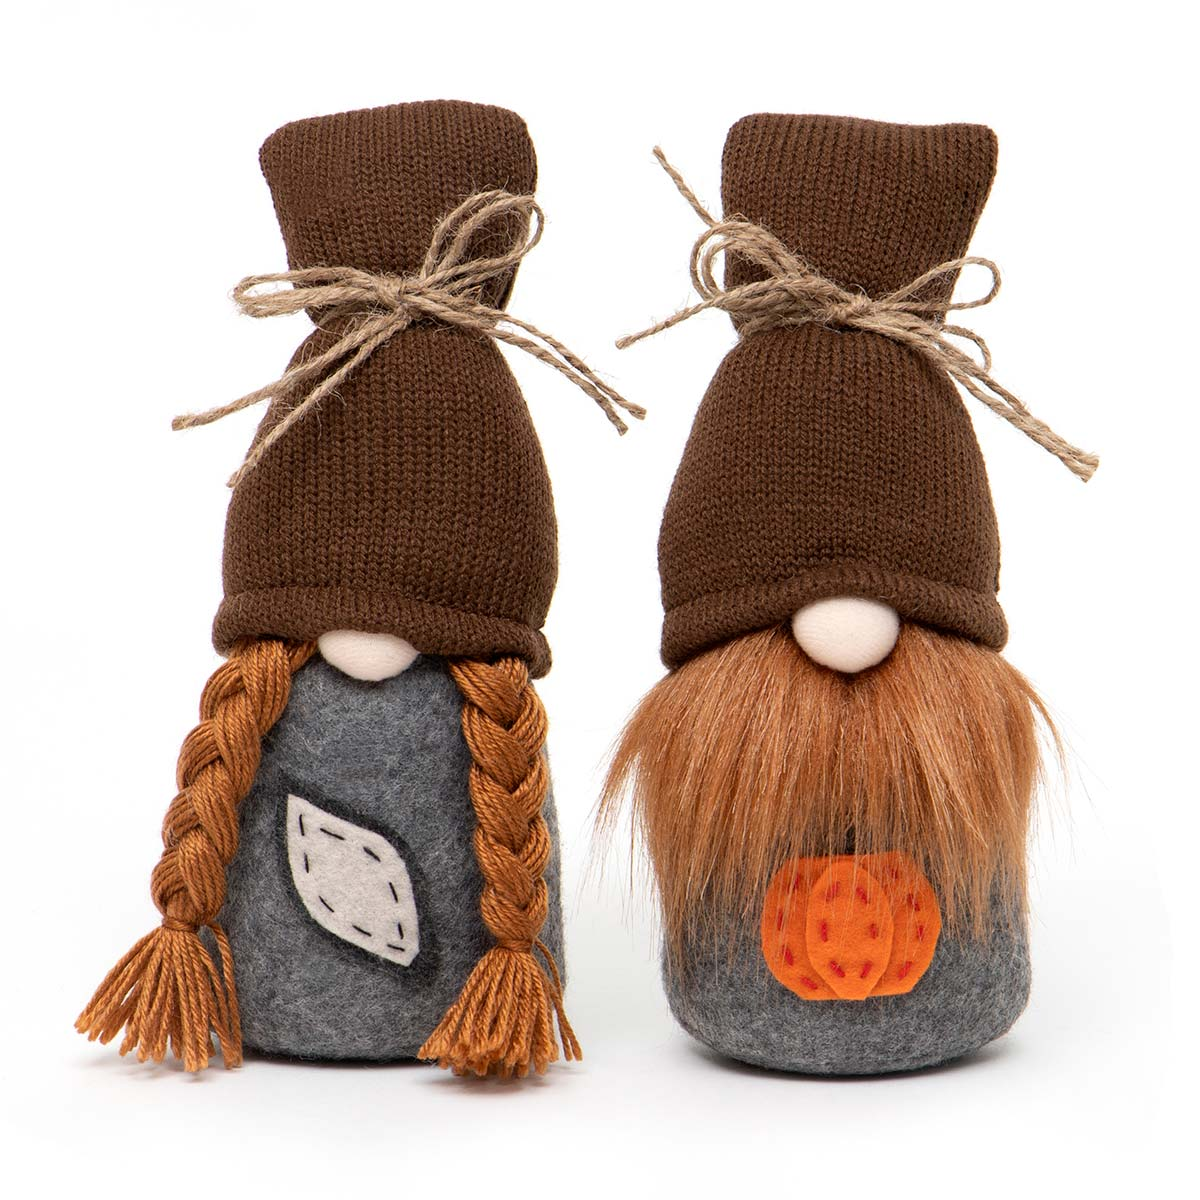 FALL HARVEST COUPLE GNOME WITH BROWN SWEATER